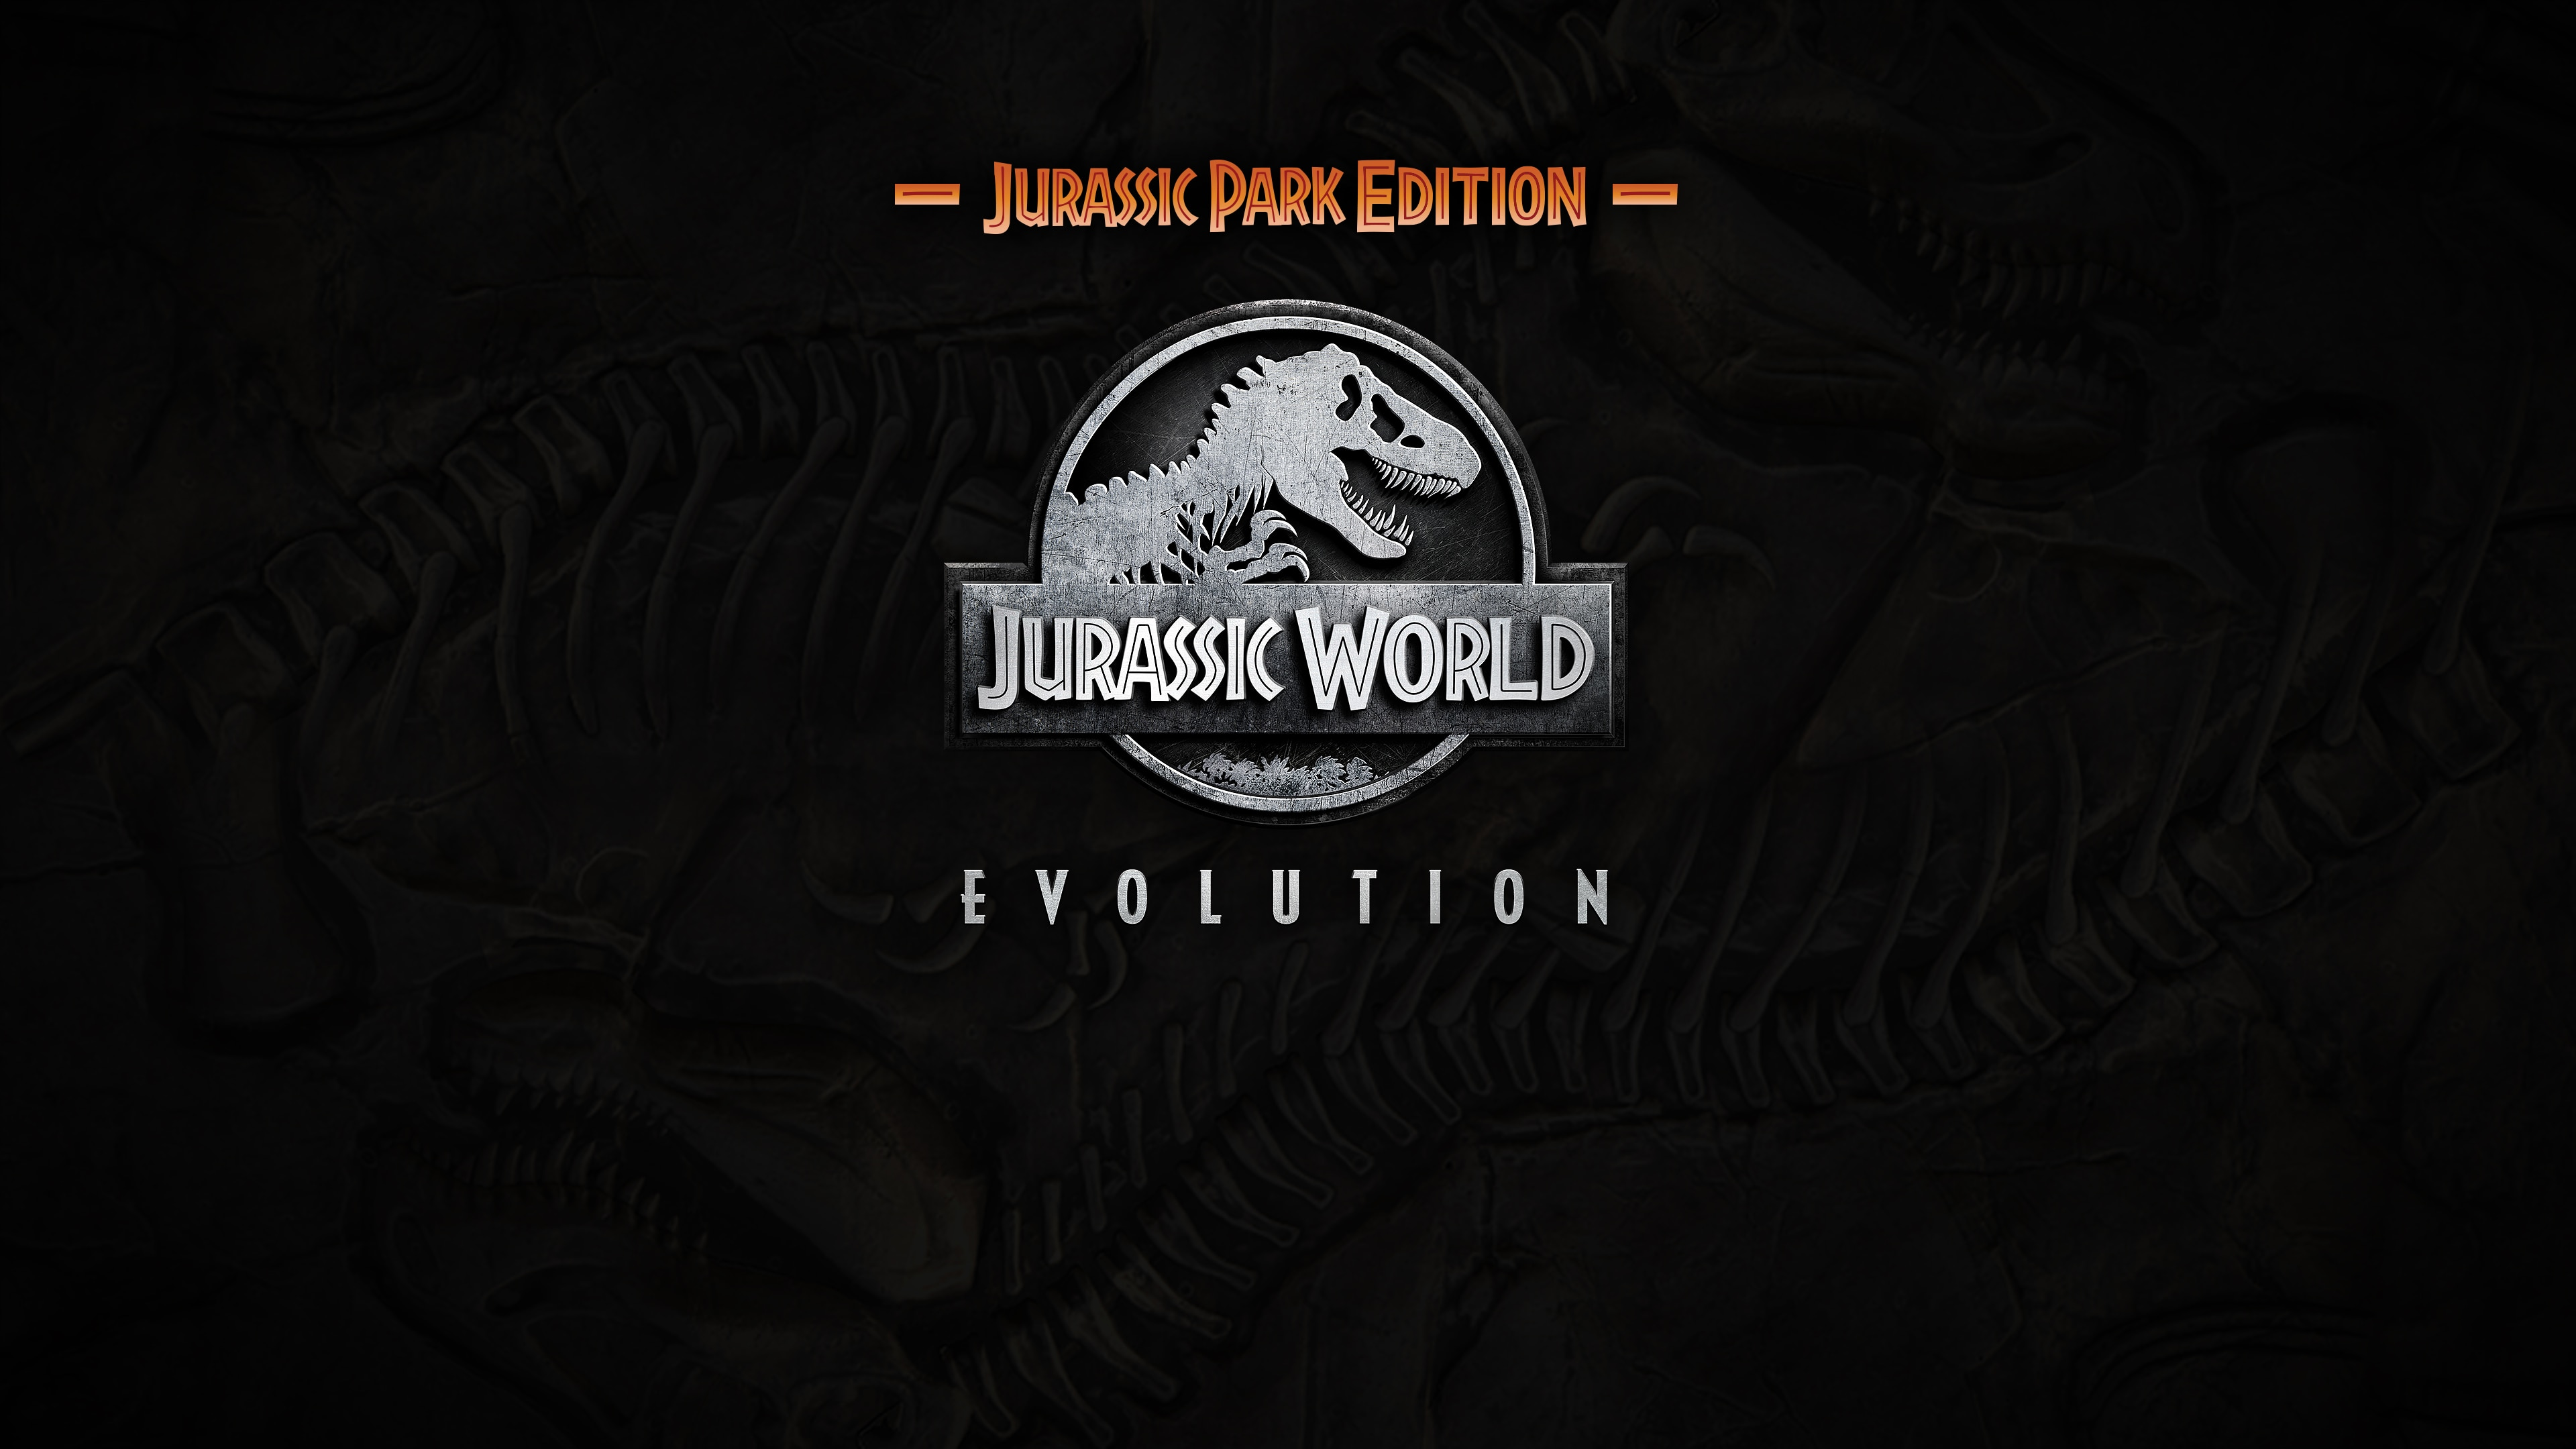 Jurassic World Evolution: Jurassic Park Edition